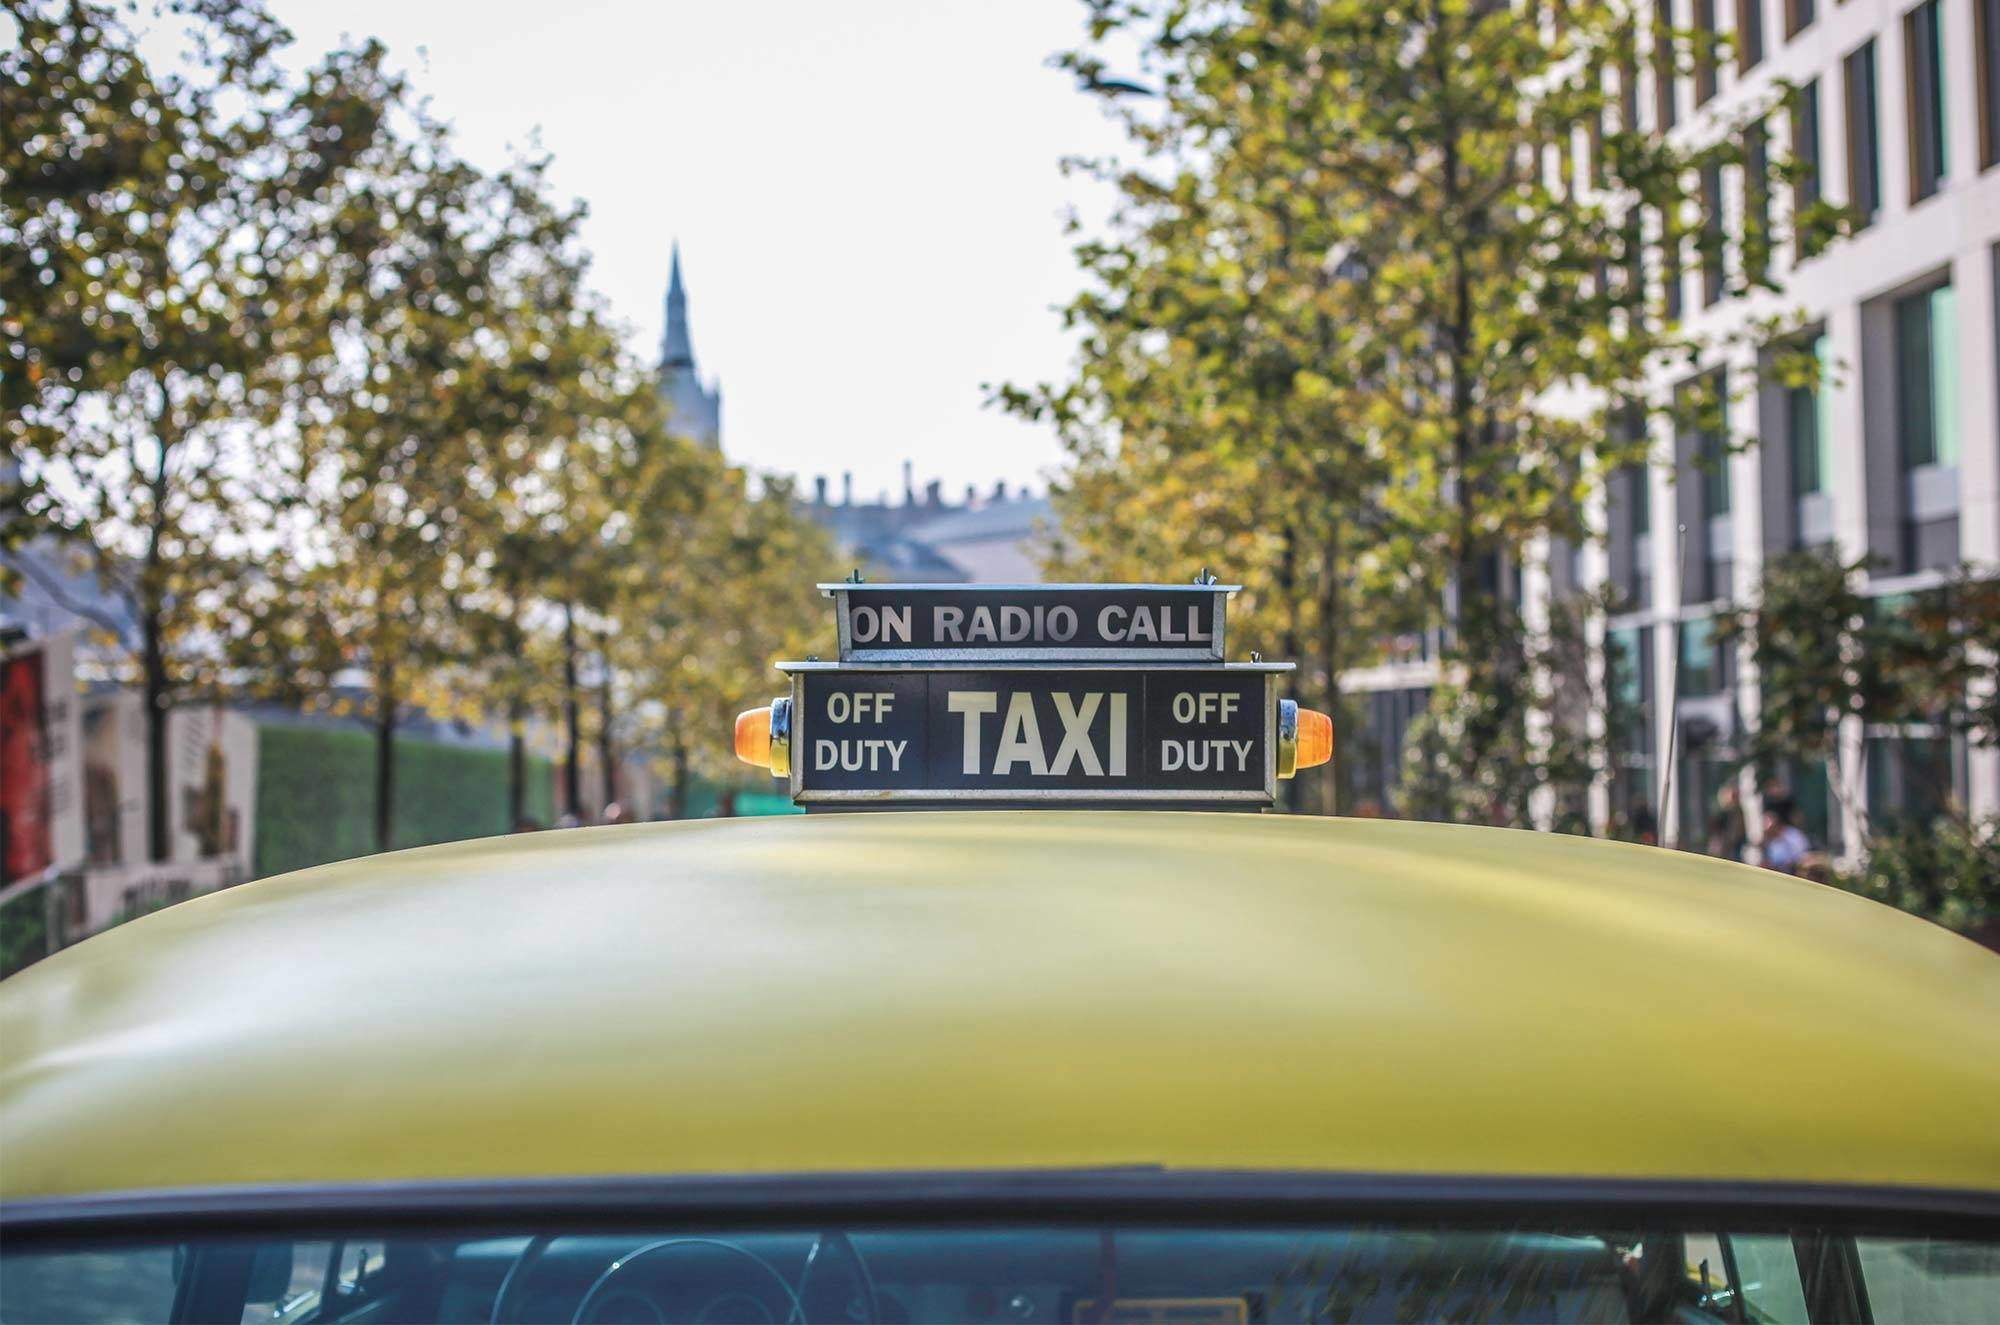 Uber Outlawed in London: The War against OTT Continues